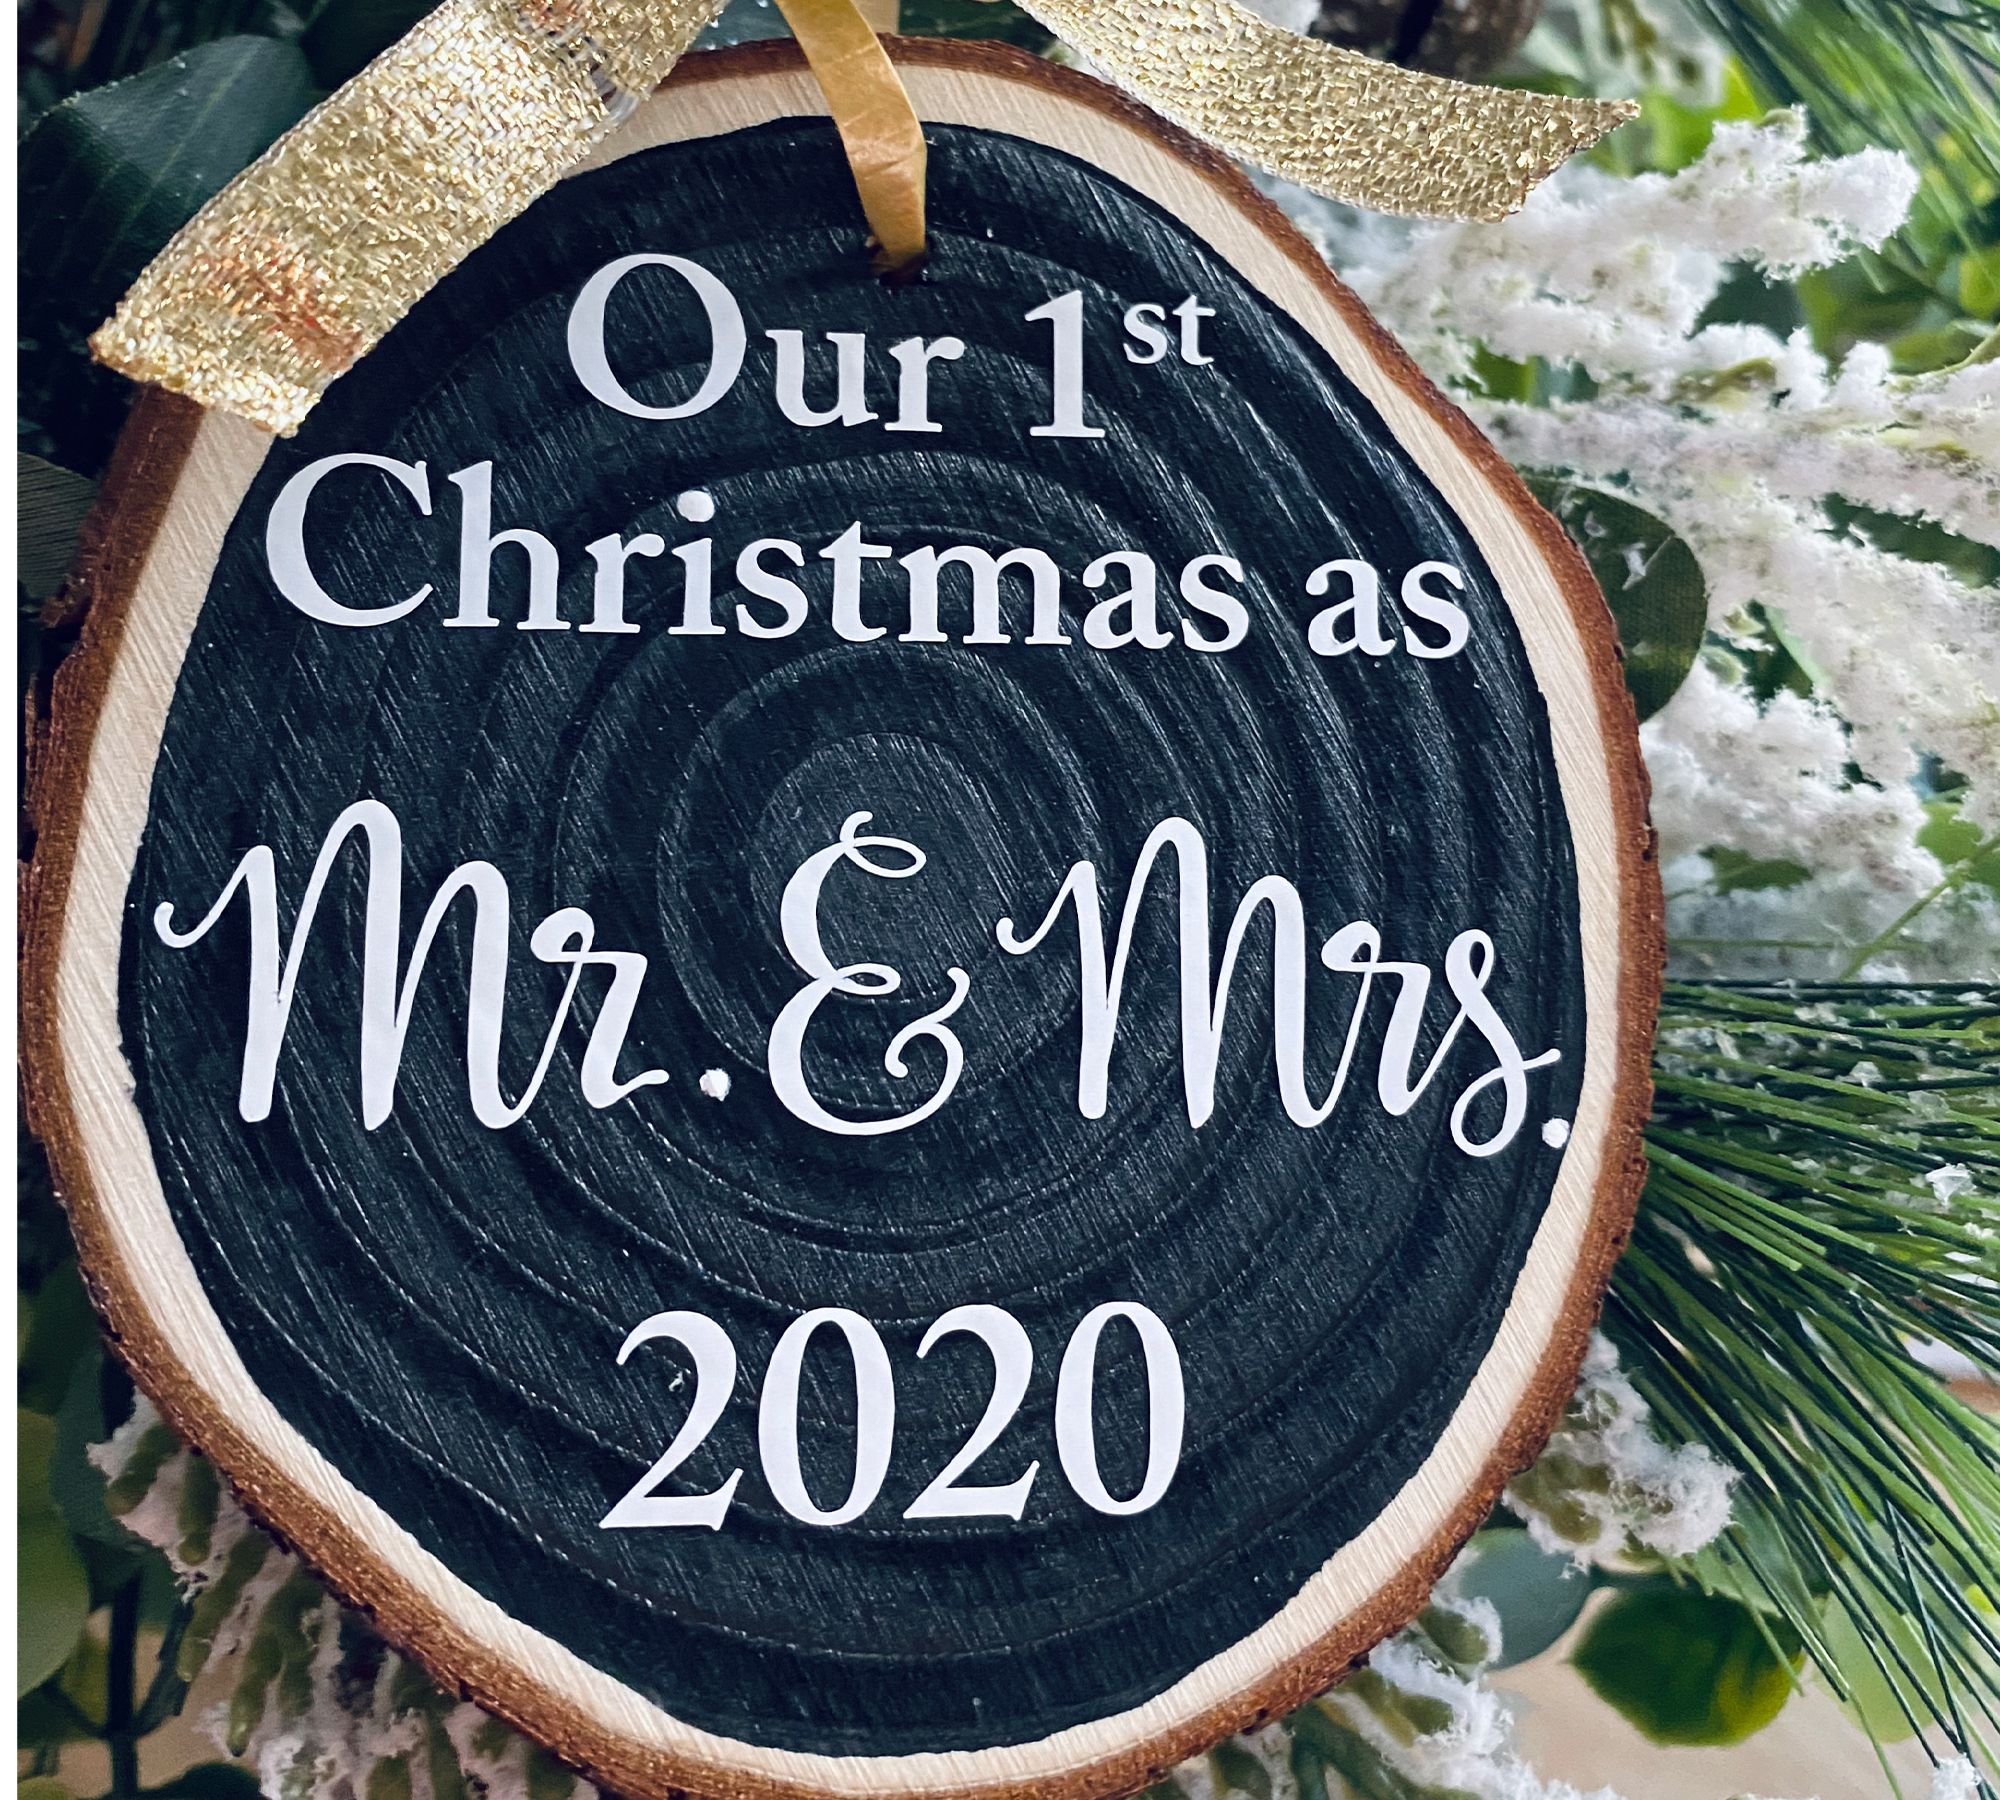 Wine First Christmas Together Ornament 2020 Our First Christmas 2020 Ornament Mr. and Mrs. Wood | Etsy in 2020